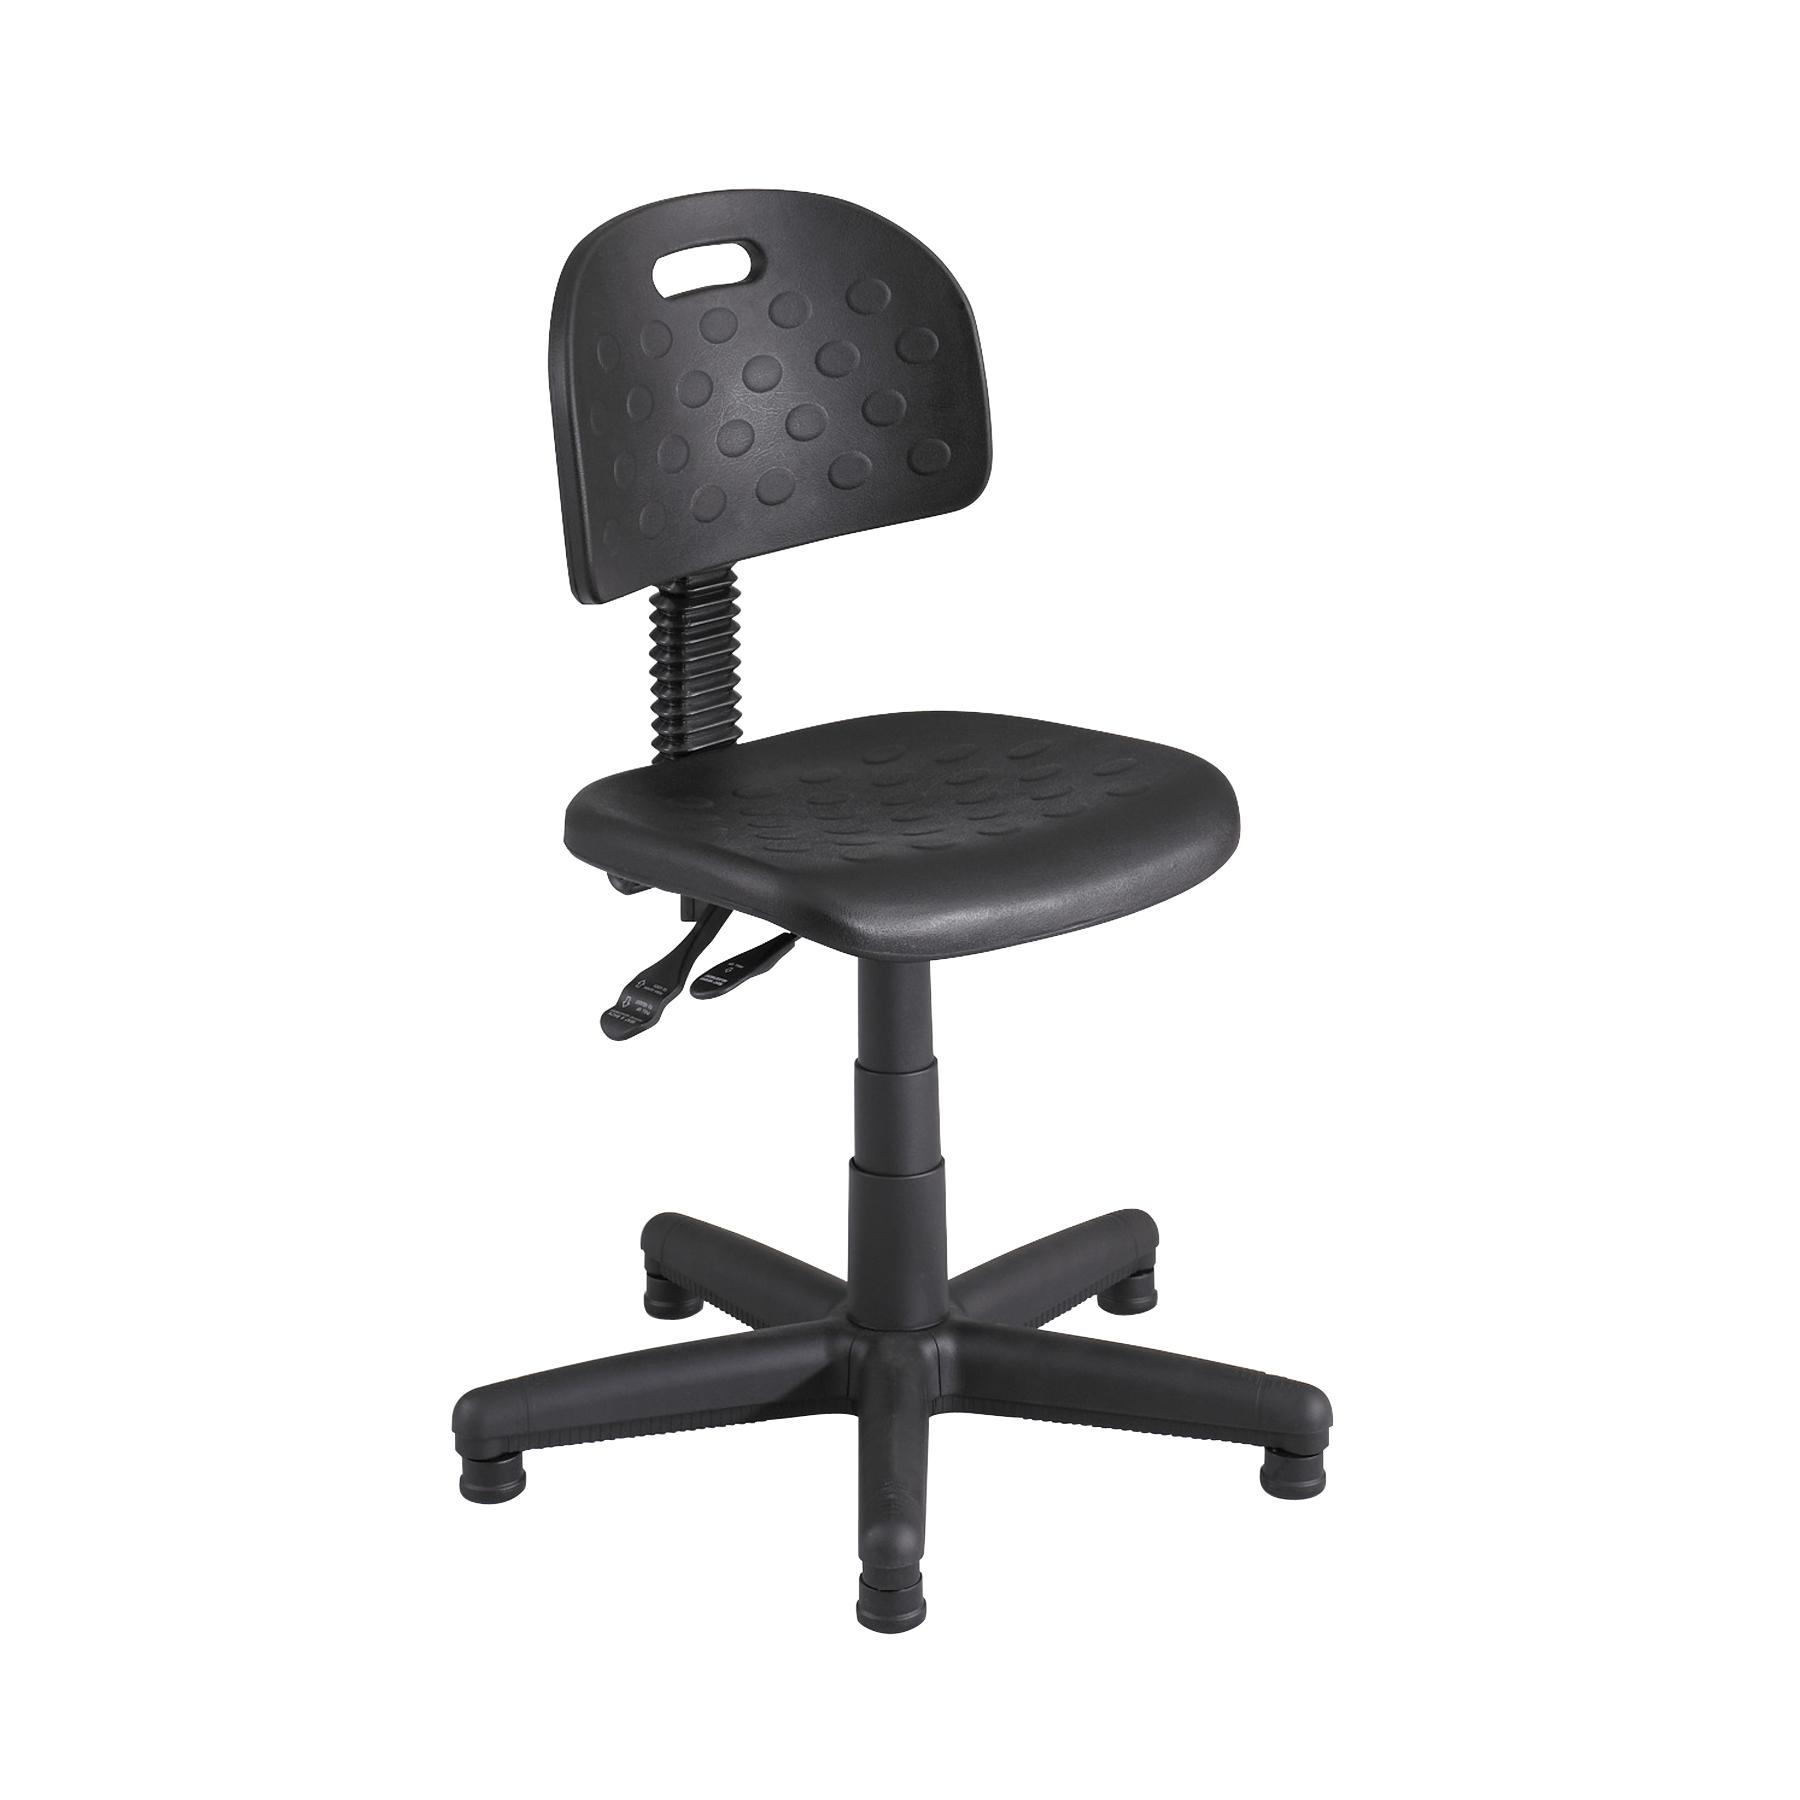 Exceptionnel Safco Desk Height Black Chair   N/A